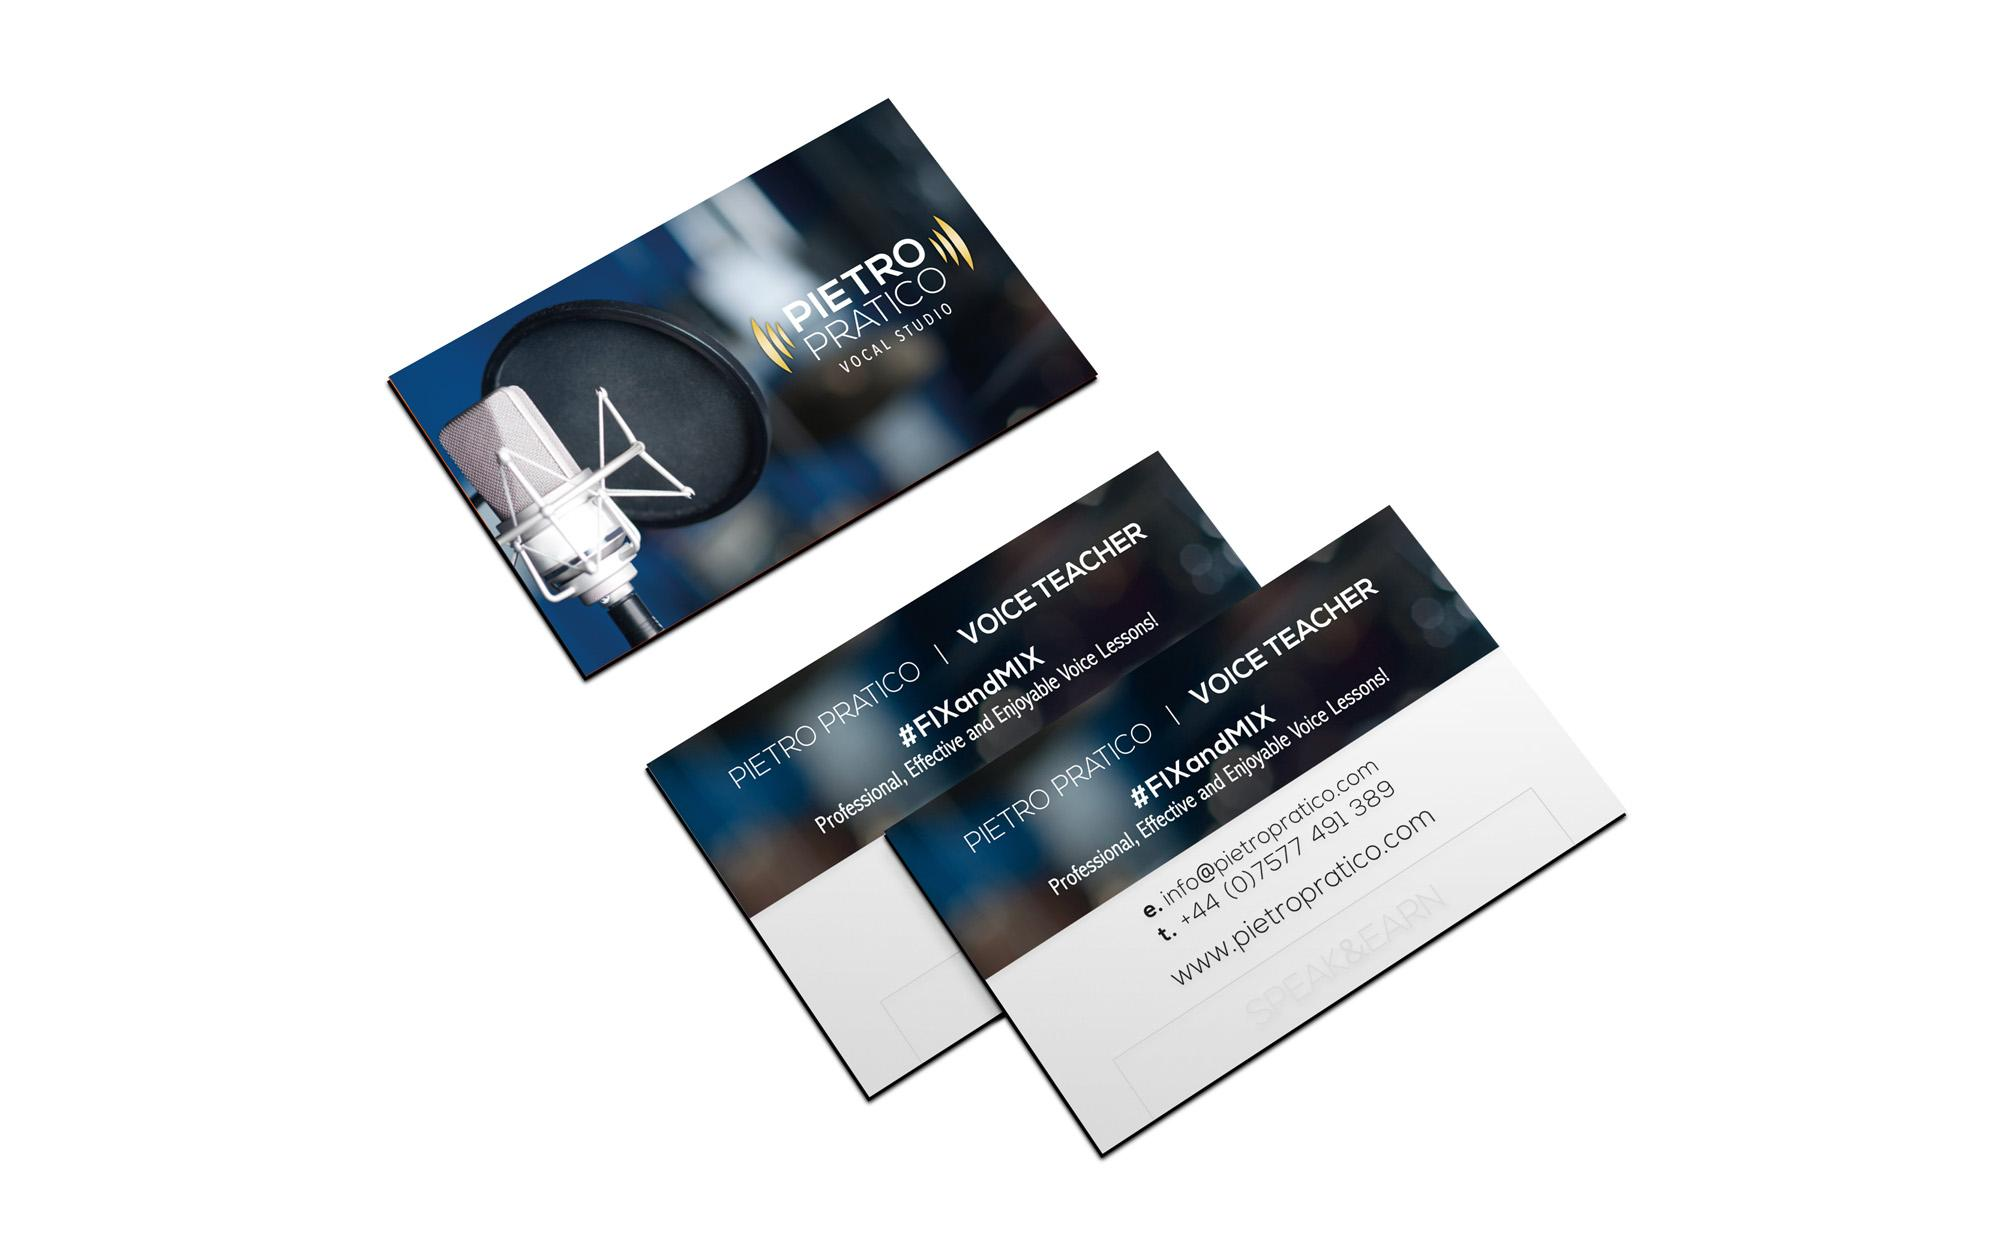 Crazy business cards image collections free business cards effective business card design images free business cards business cards silvia sciuto business card design pietro magicingreecefo Images